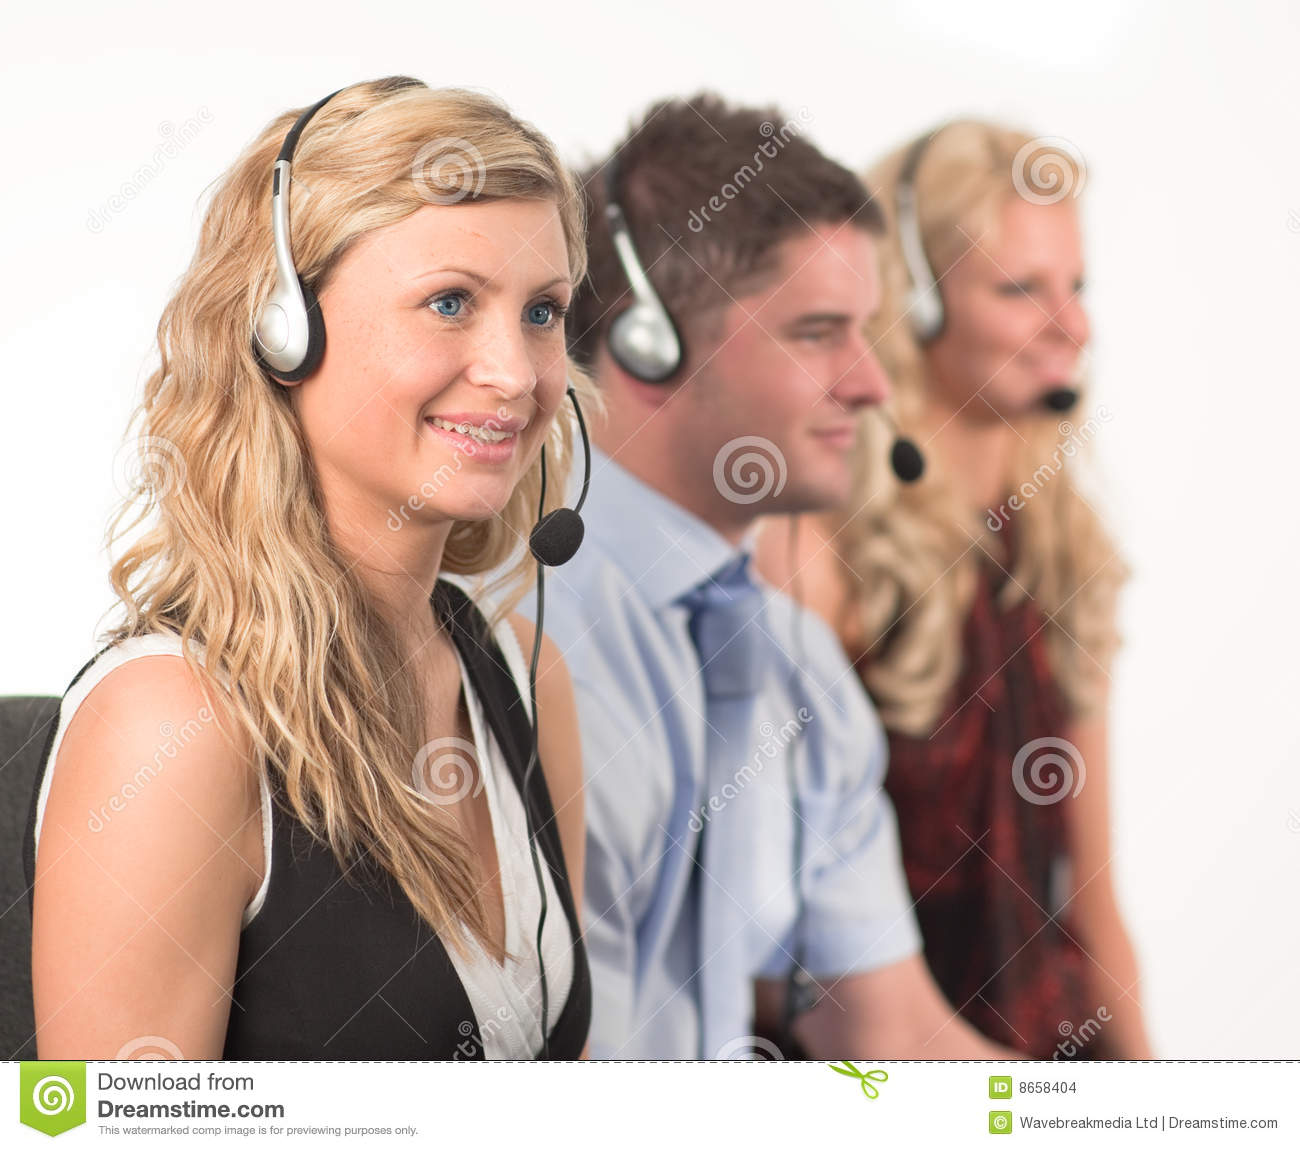 Three working in a call centre with headsets